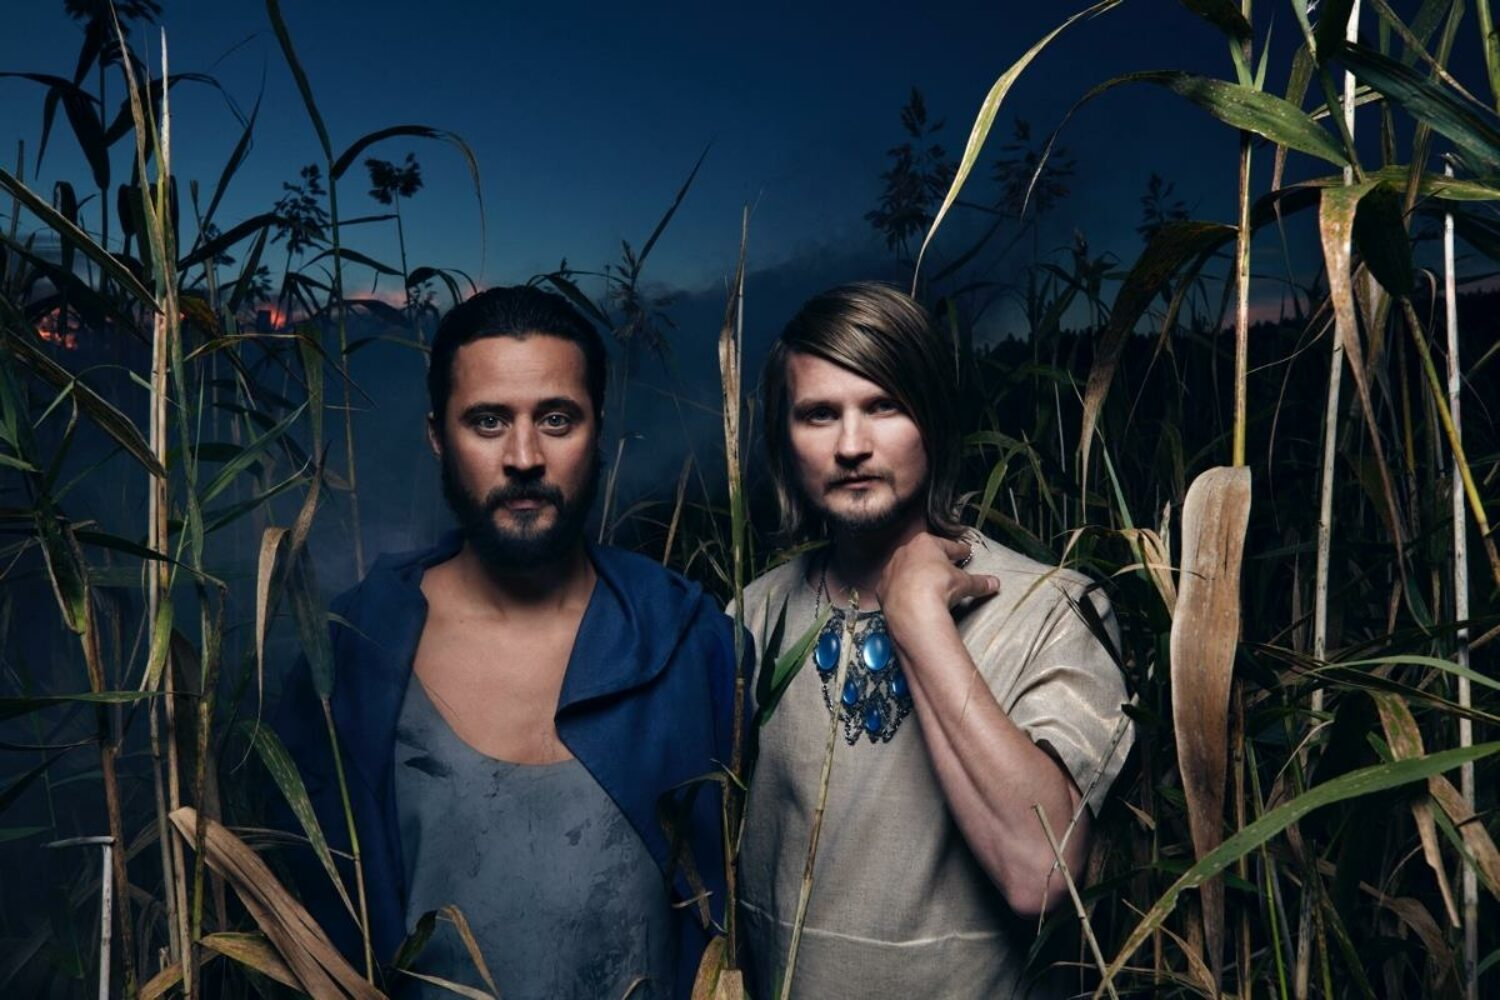 Röyksopp preview last album with 'You Know I Have To Go (feat. Jamie McDermott)'